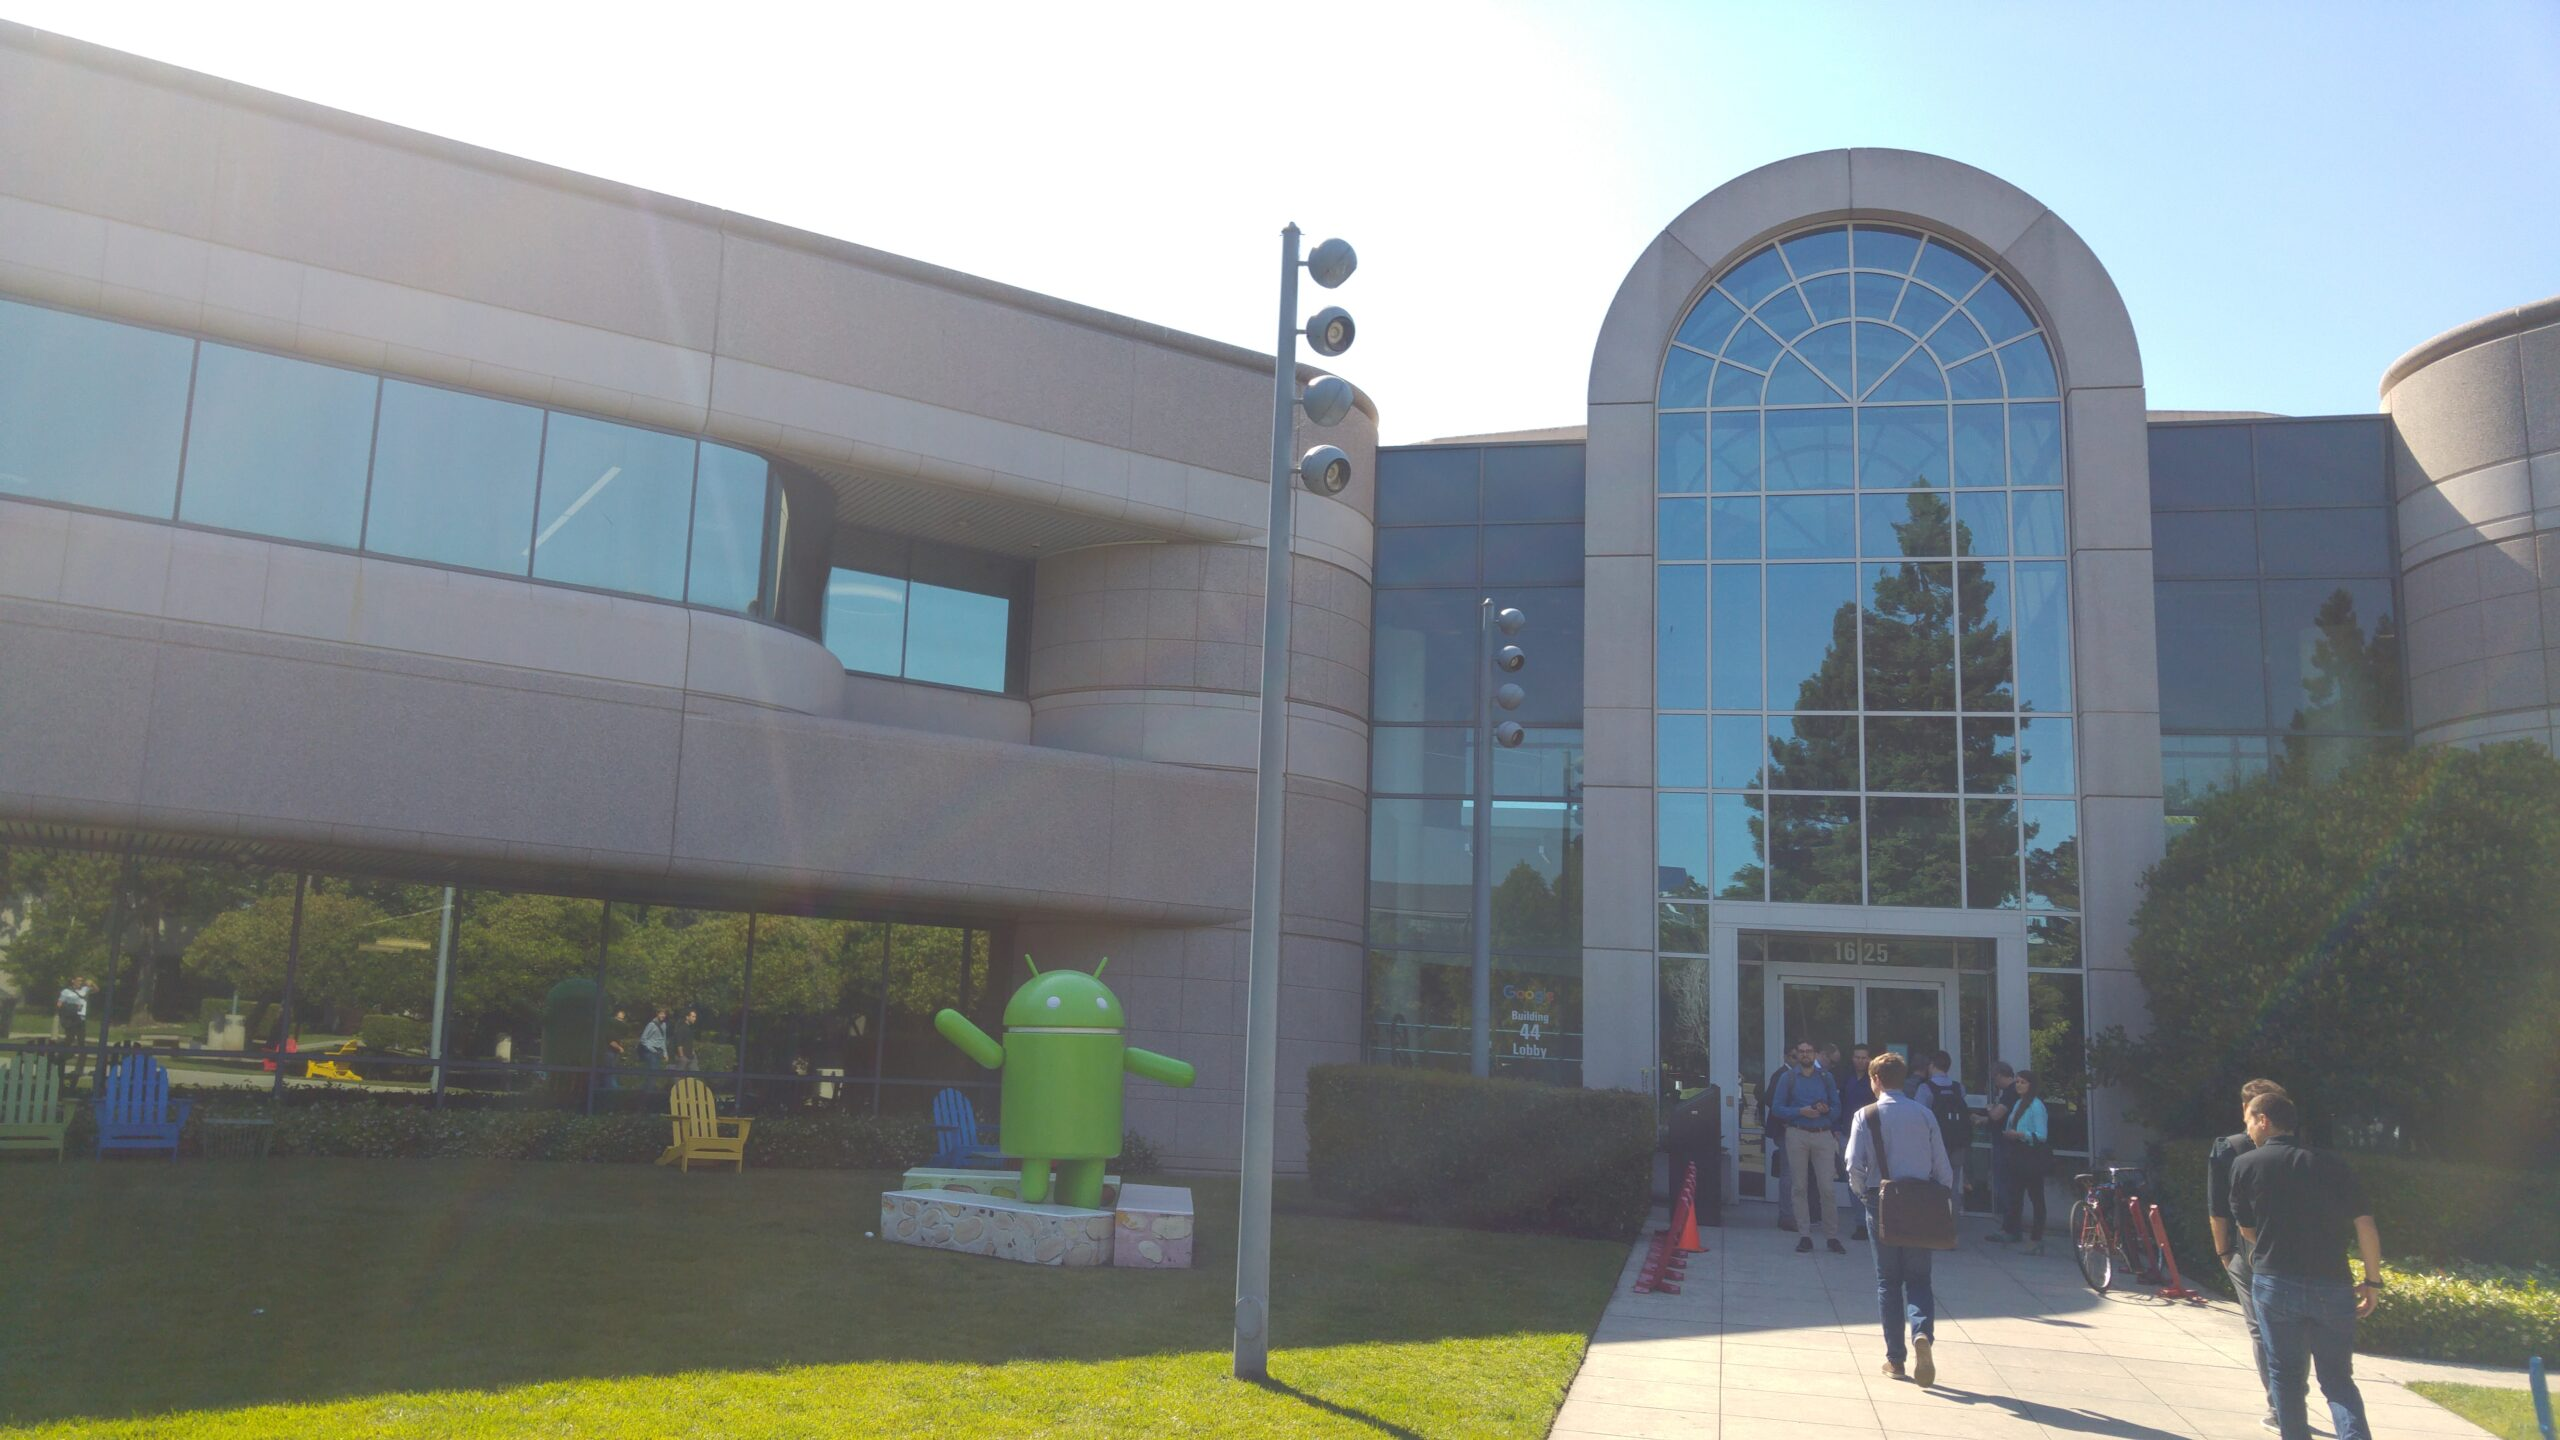 Google Visitor Center in Mountain View